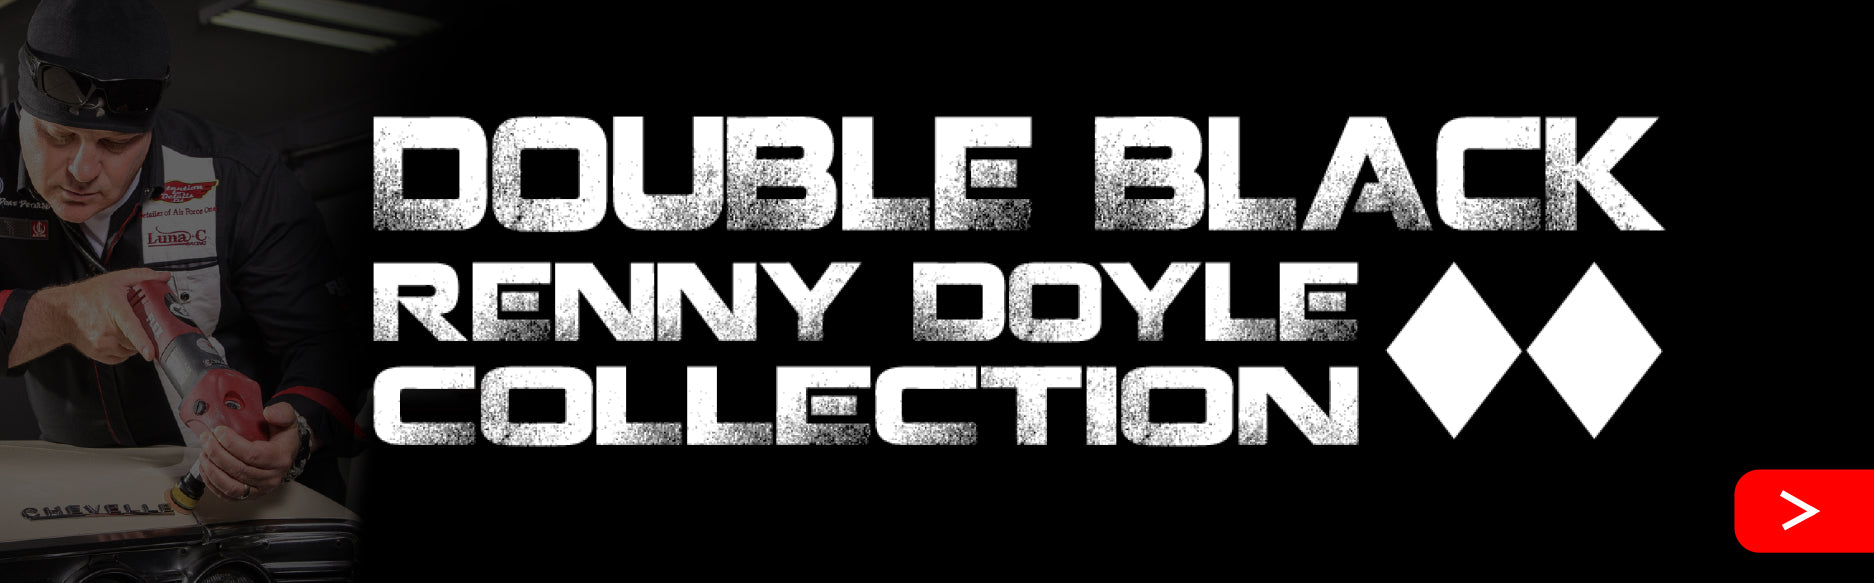 Double Black Renny Doyble Collection banner logo